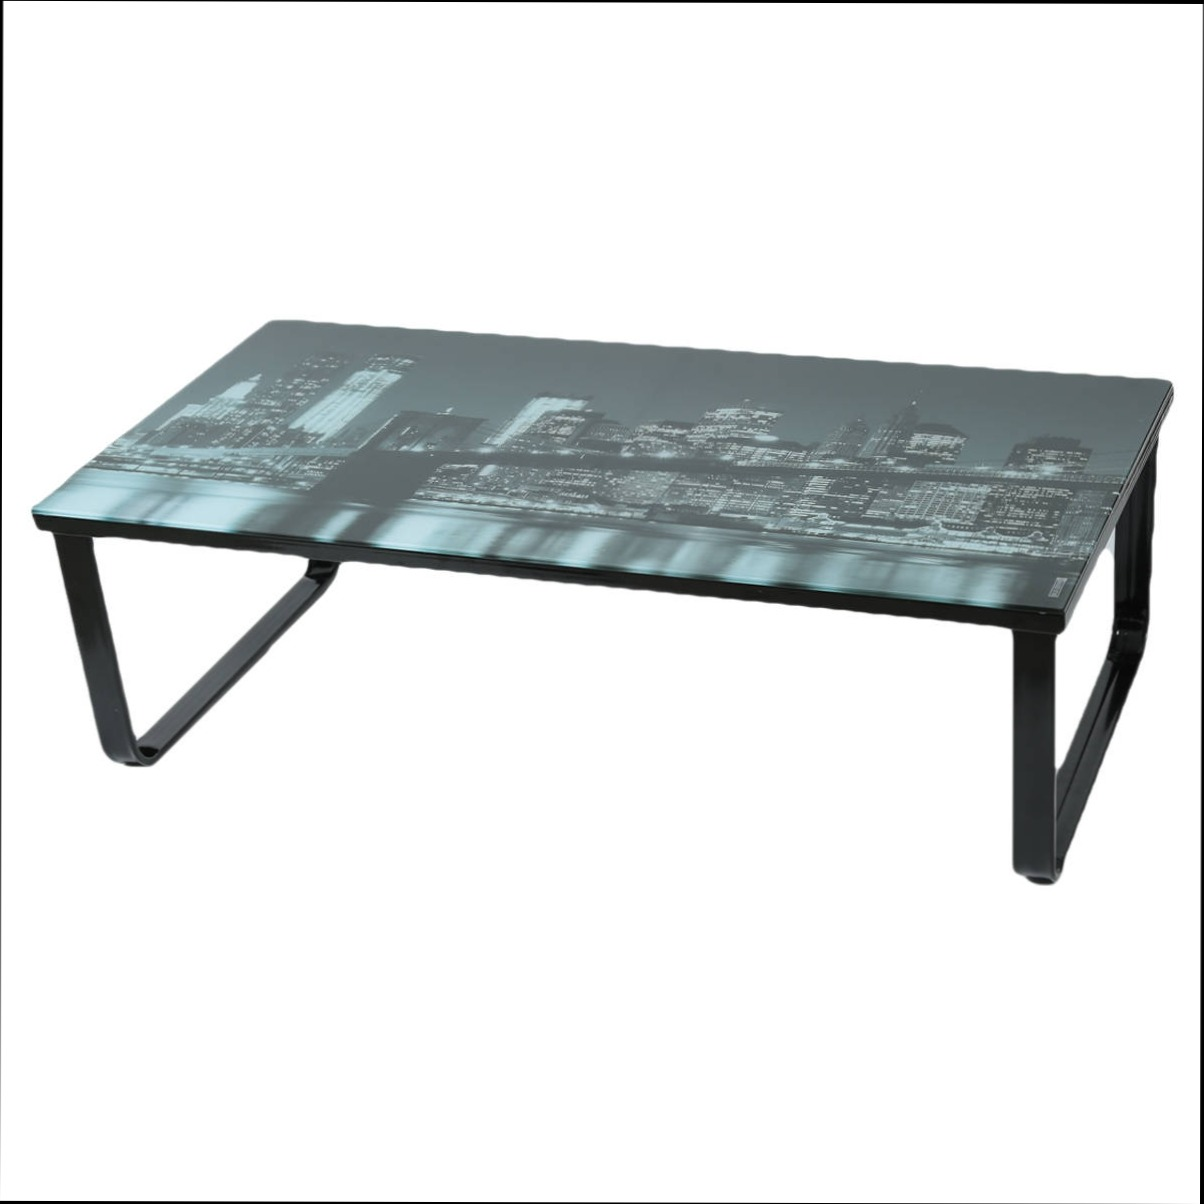 table basse en verre tati mobilier design d coration d. Black Bedroom Furniture Sets. Home Design Ideas